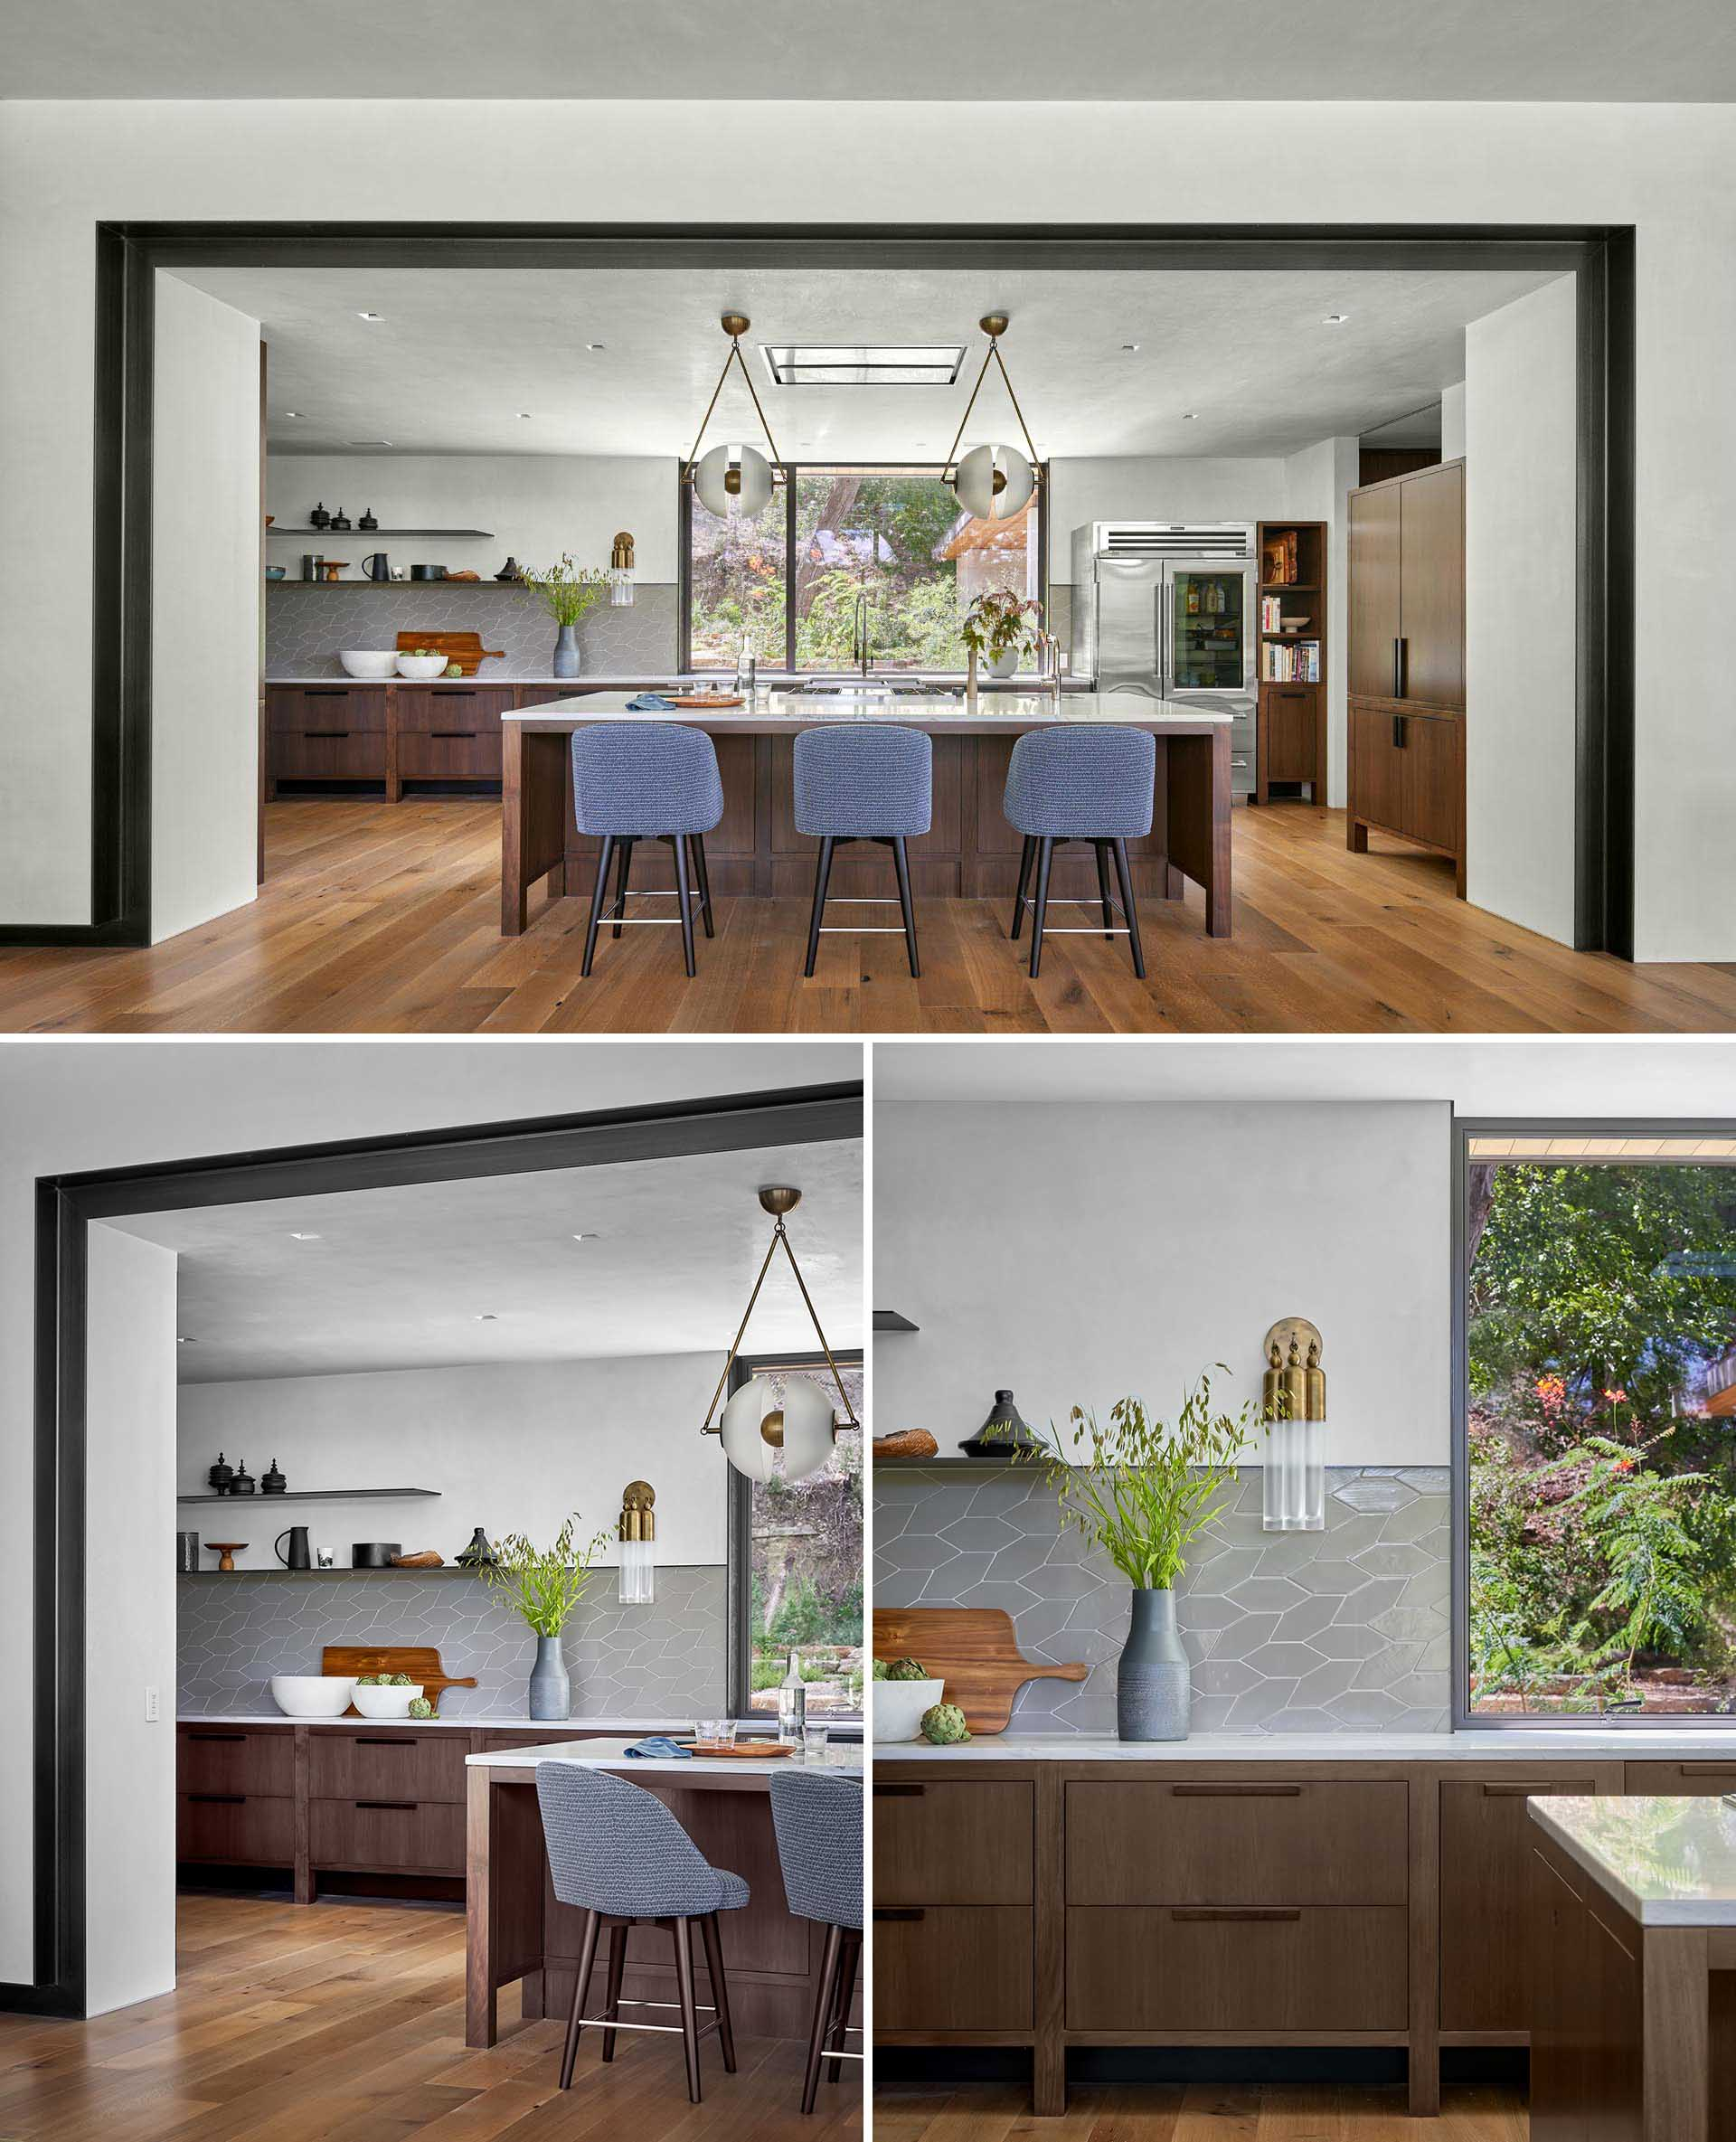 This modern kitchen features cabinets on wooden legs that create a physical and visual space between the floor and cabinets. A glass front refrigerator adds to the design of the kitchen, while a custom kitchen armoire stores coffee making equipment.